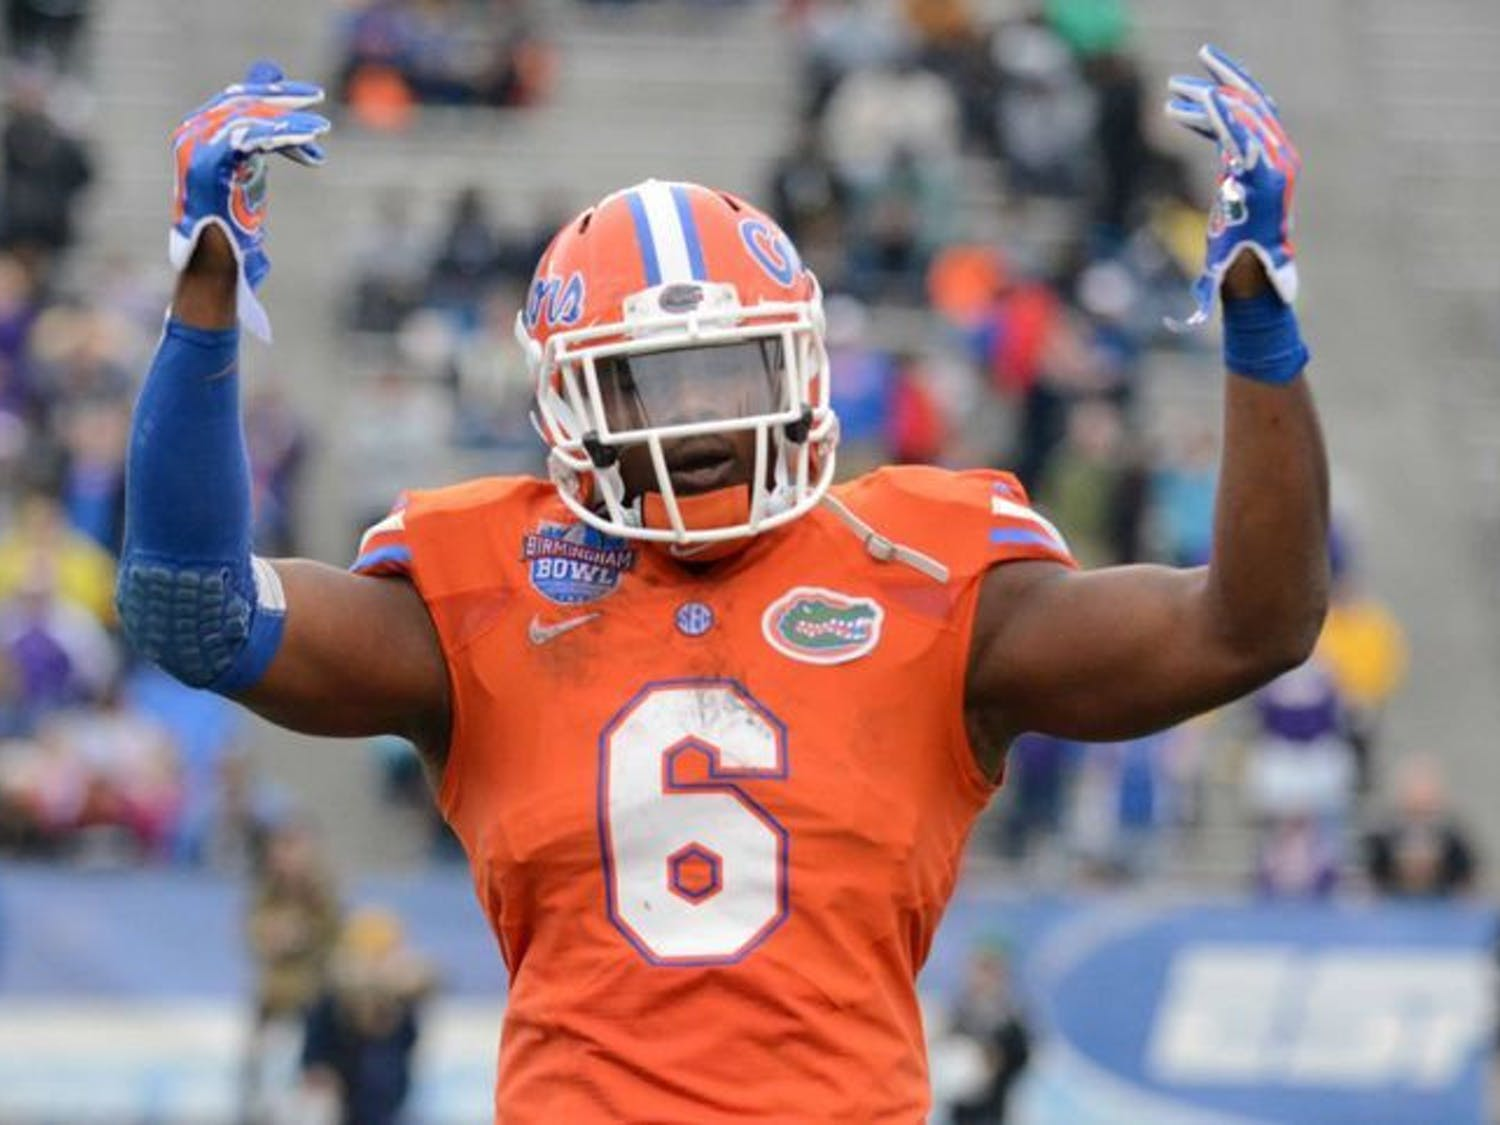 Dante Fowler Jr. hypes up the crowd during Florida's 28-20 win in the Birmingham Bowl against East Carolina on Jan. 3 at Legion Field. The Jacksonville Jaguars selected Fowler No. 3 overall in the 2015 NFL Draft on Thursday.